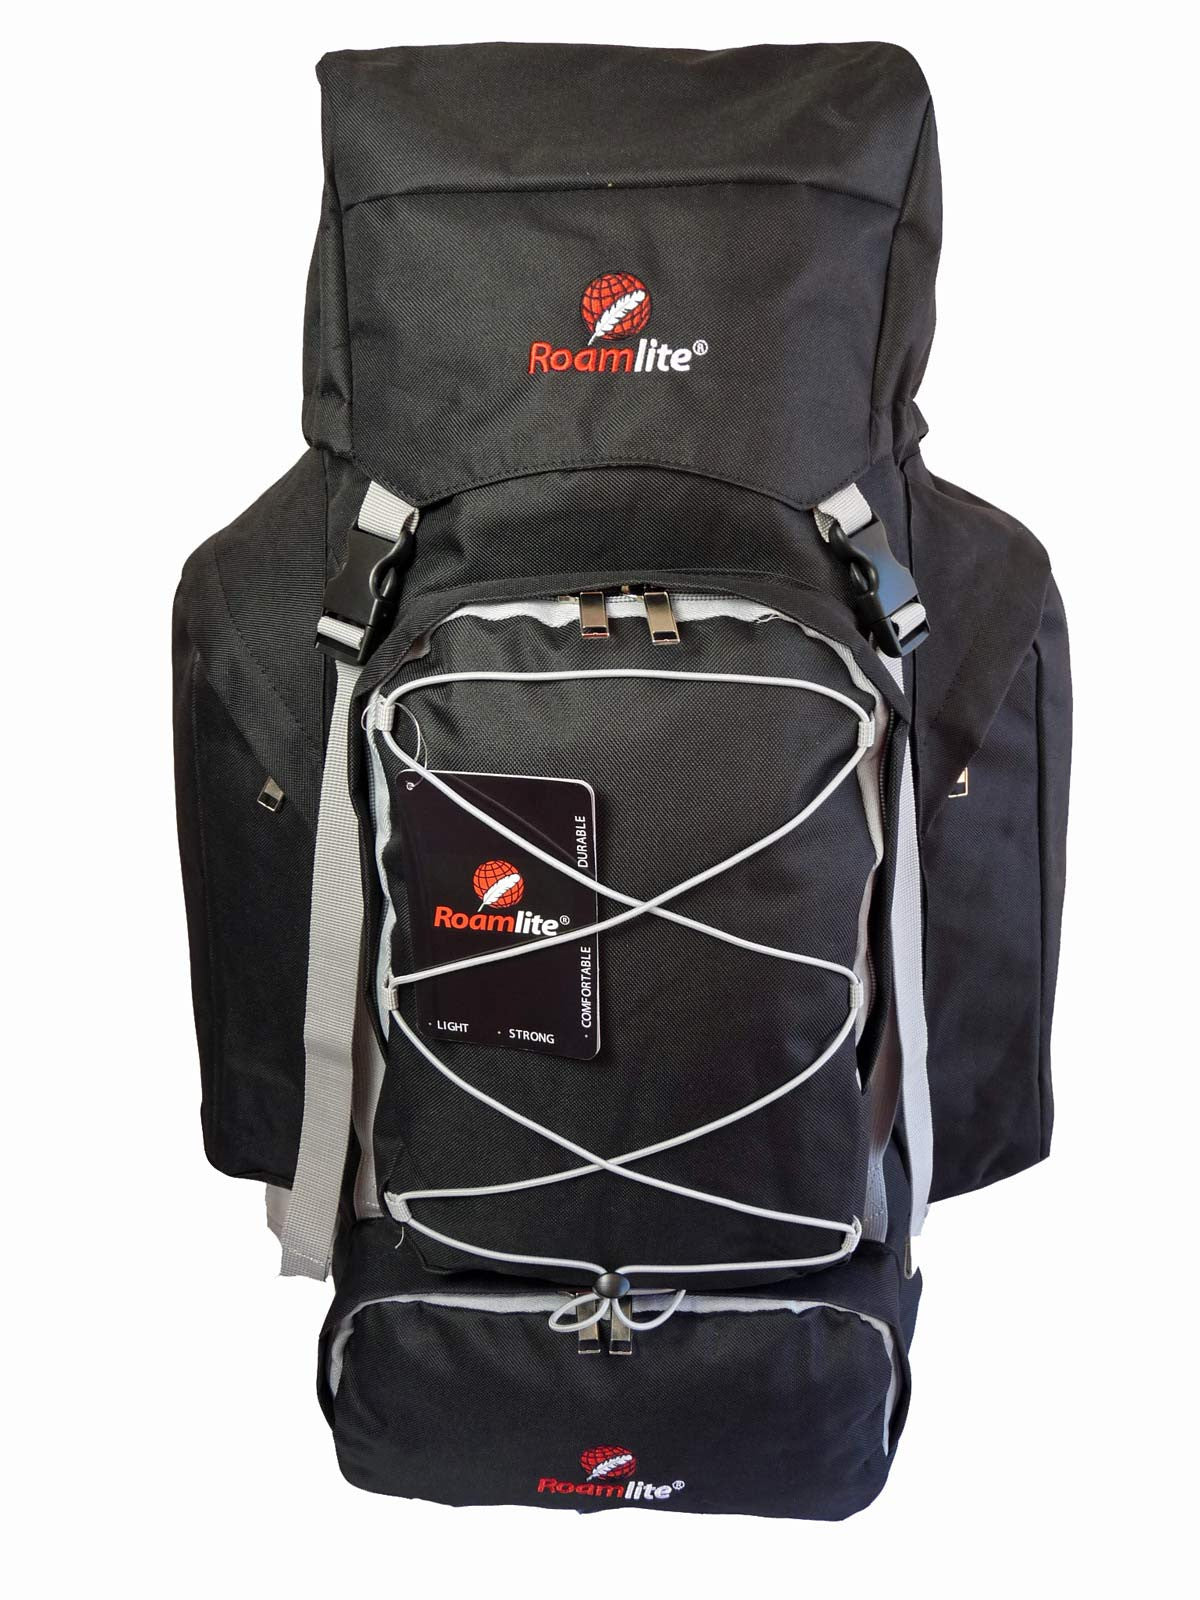 80 100 125 litre backpack black front view